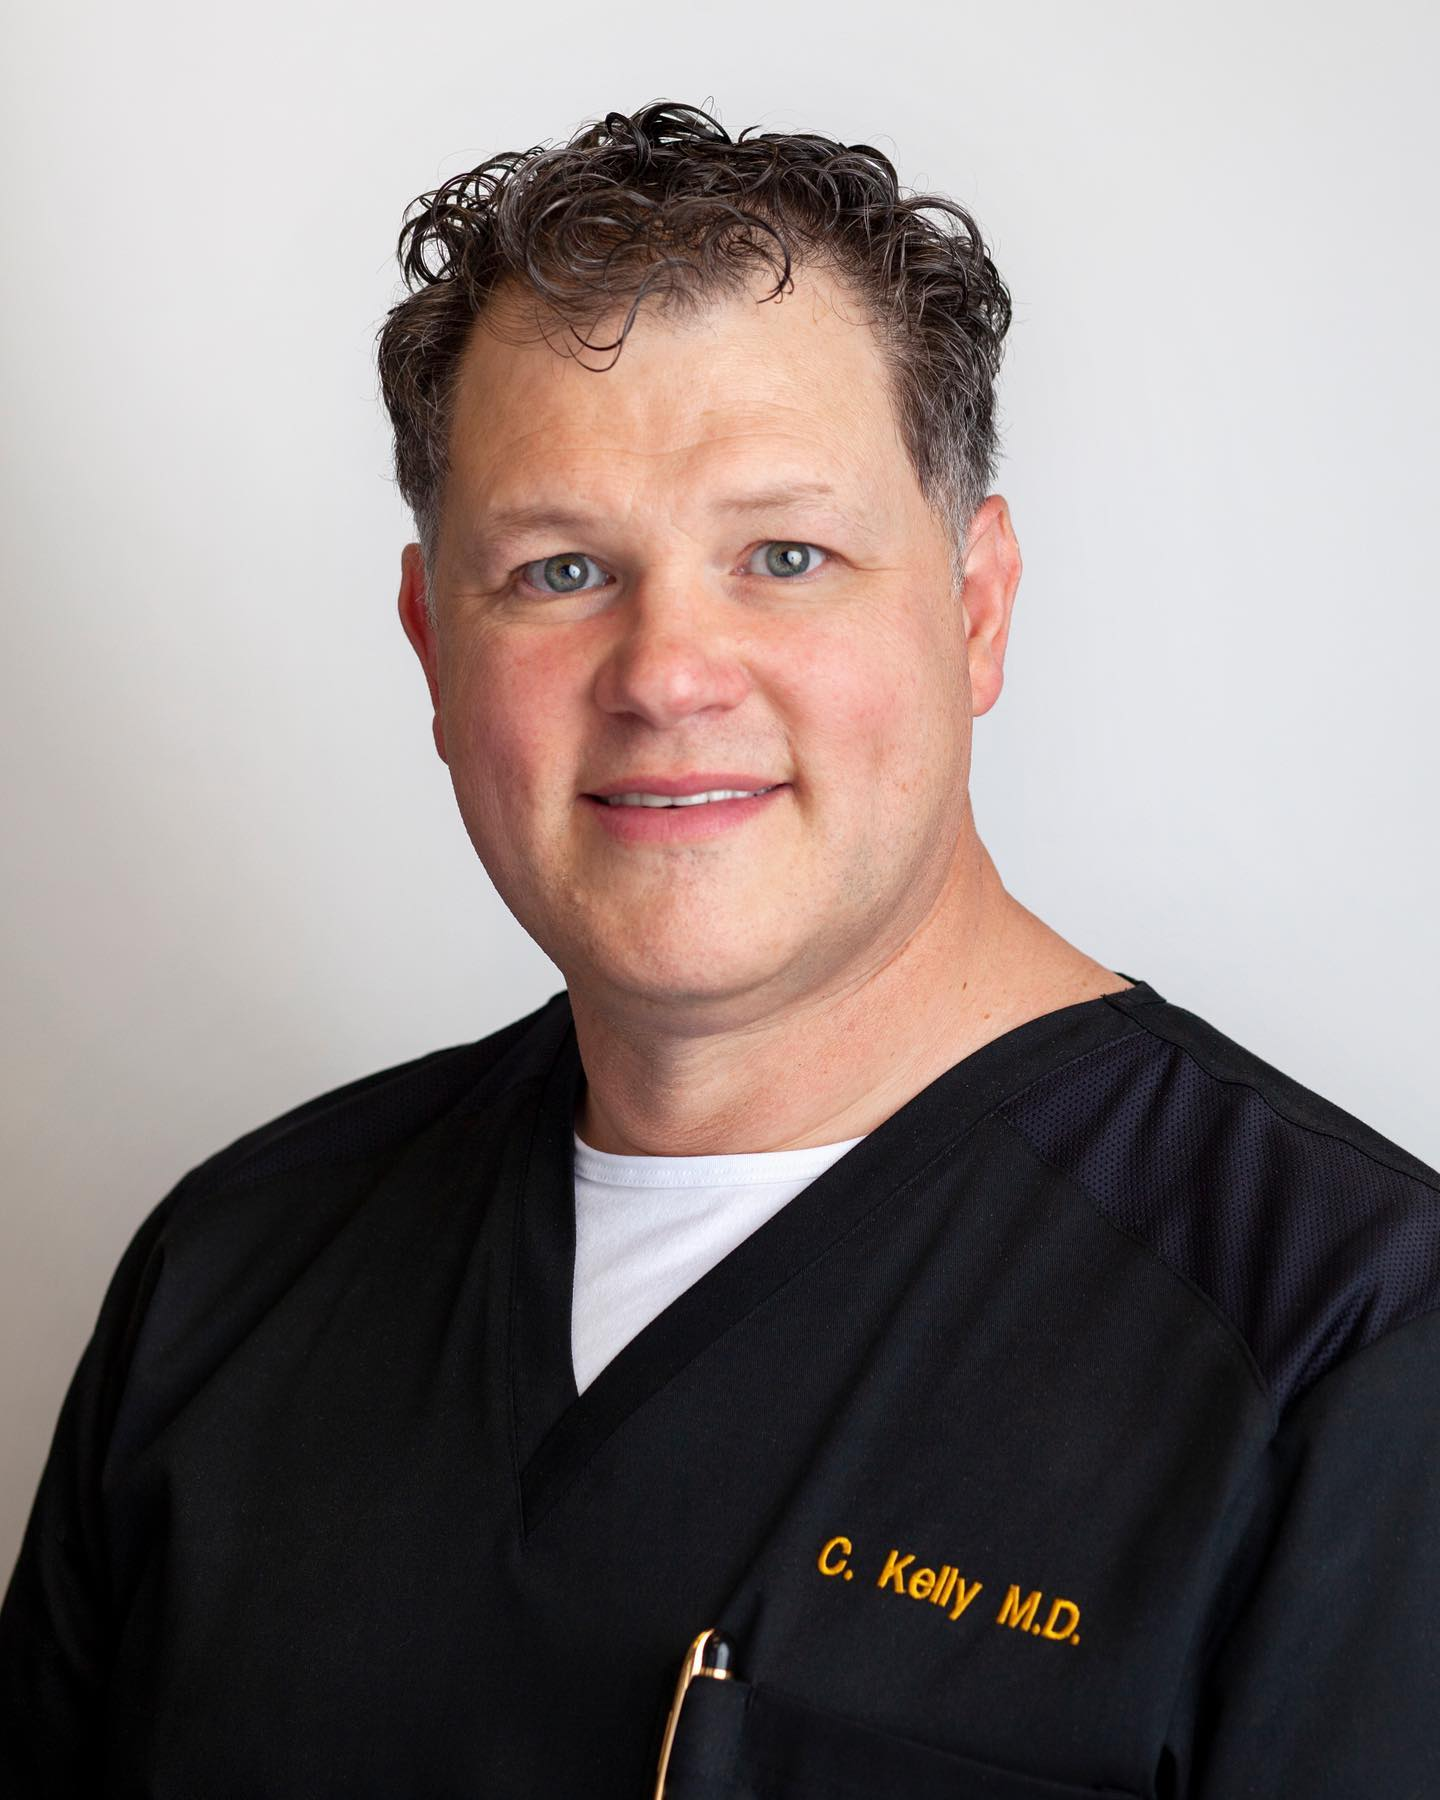 Dr. Christopher Kelly, M.D. at Revivology